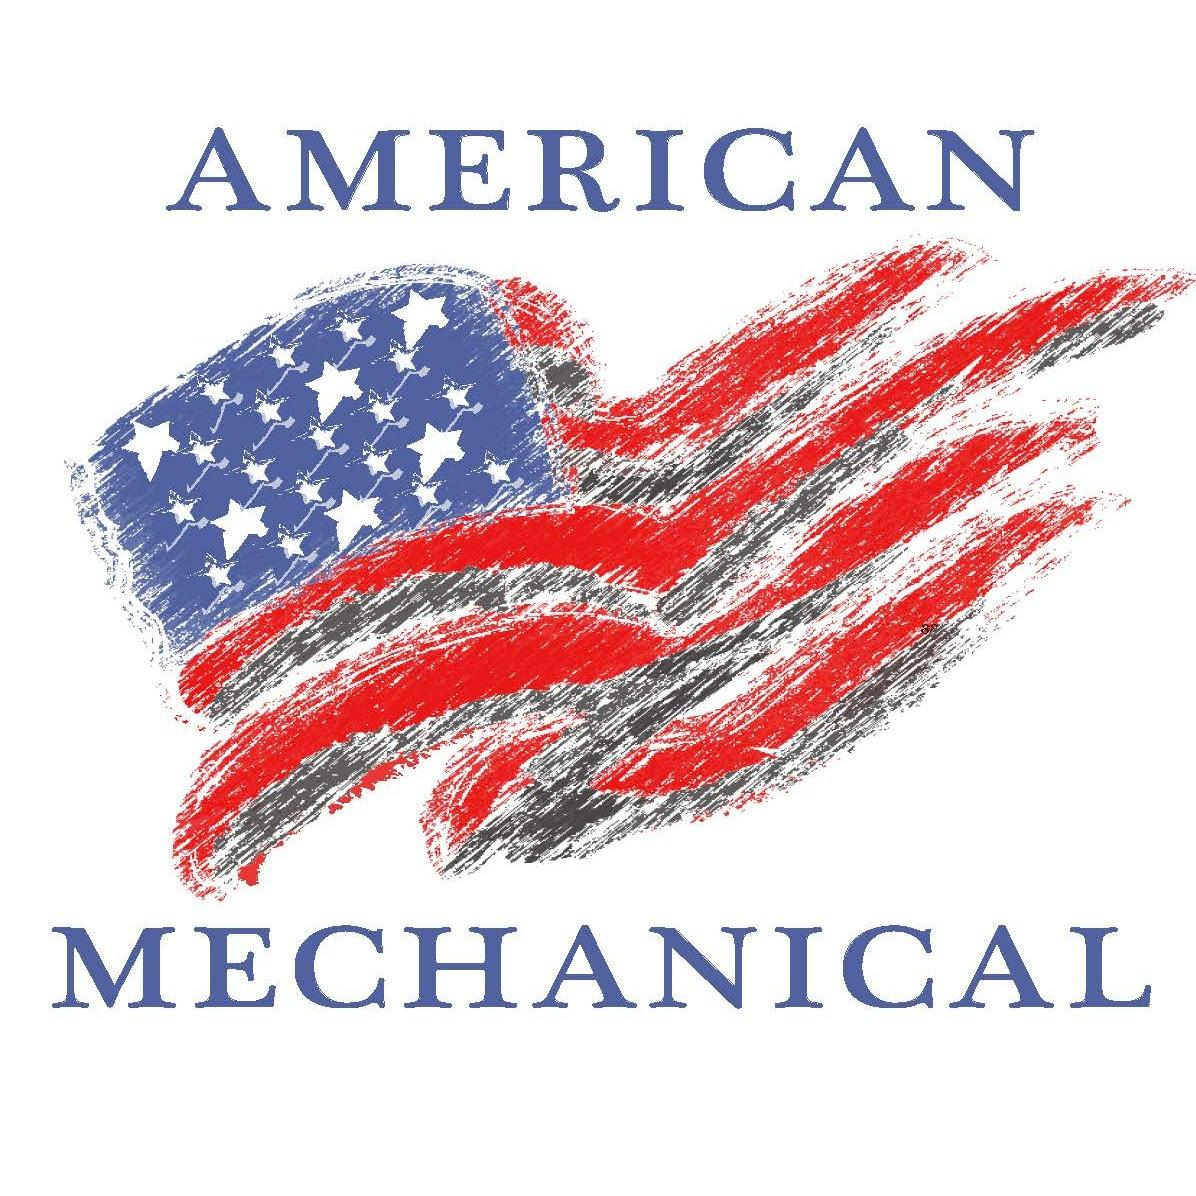 American Mechanical